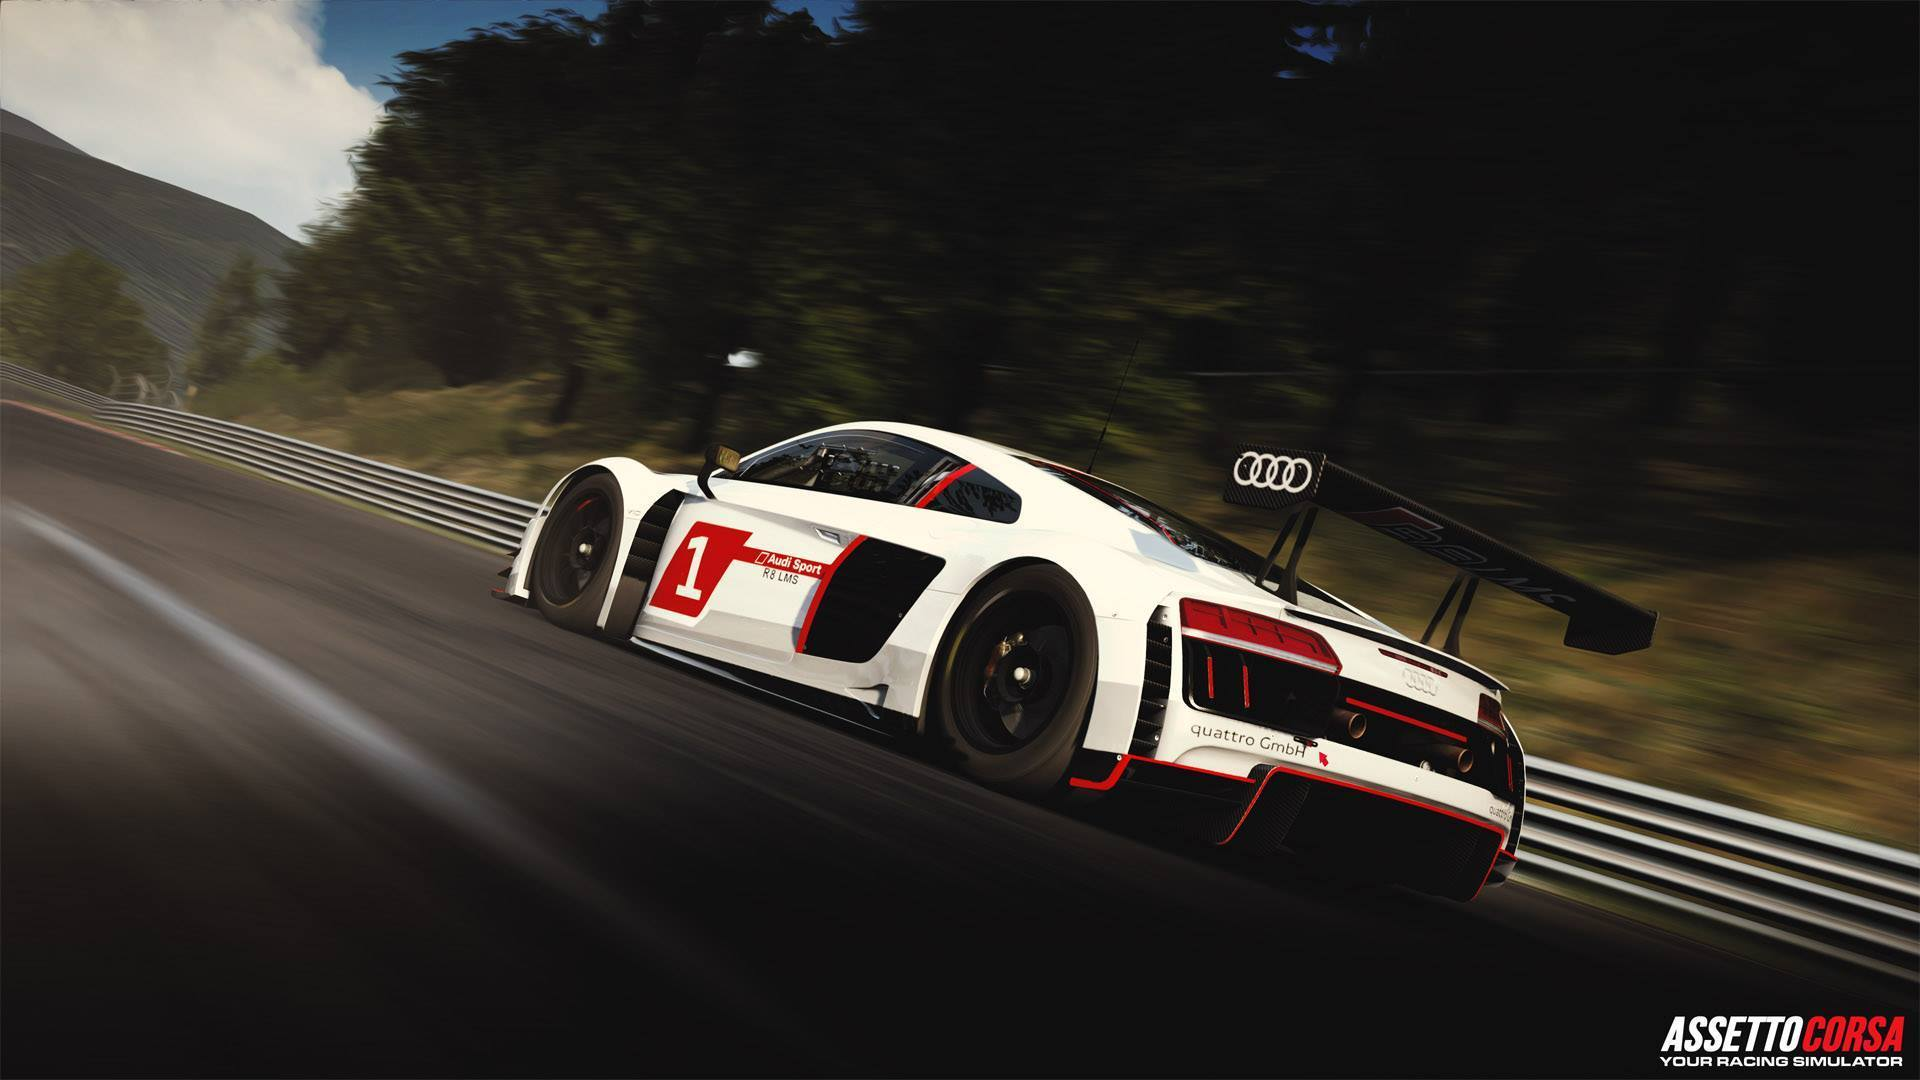 assetto corsa 39 ready to race 39 dlc car pack arrives may 18. Black Bedroom Furniture Sets. Home Design Ideas